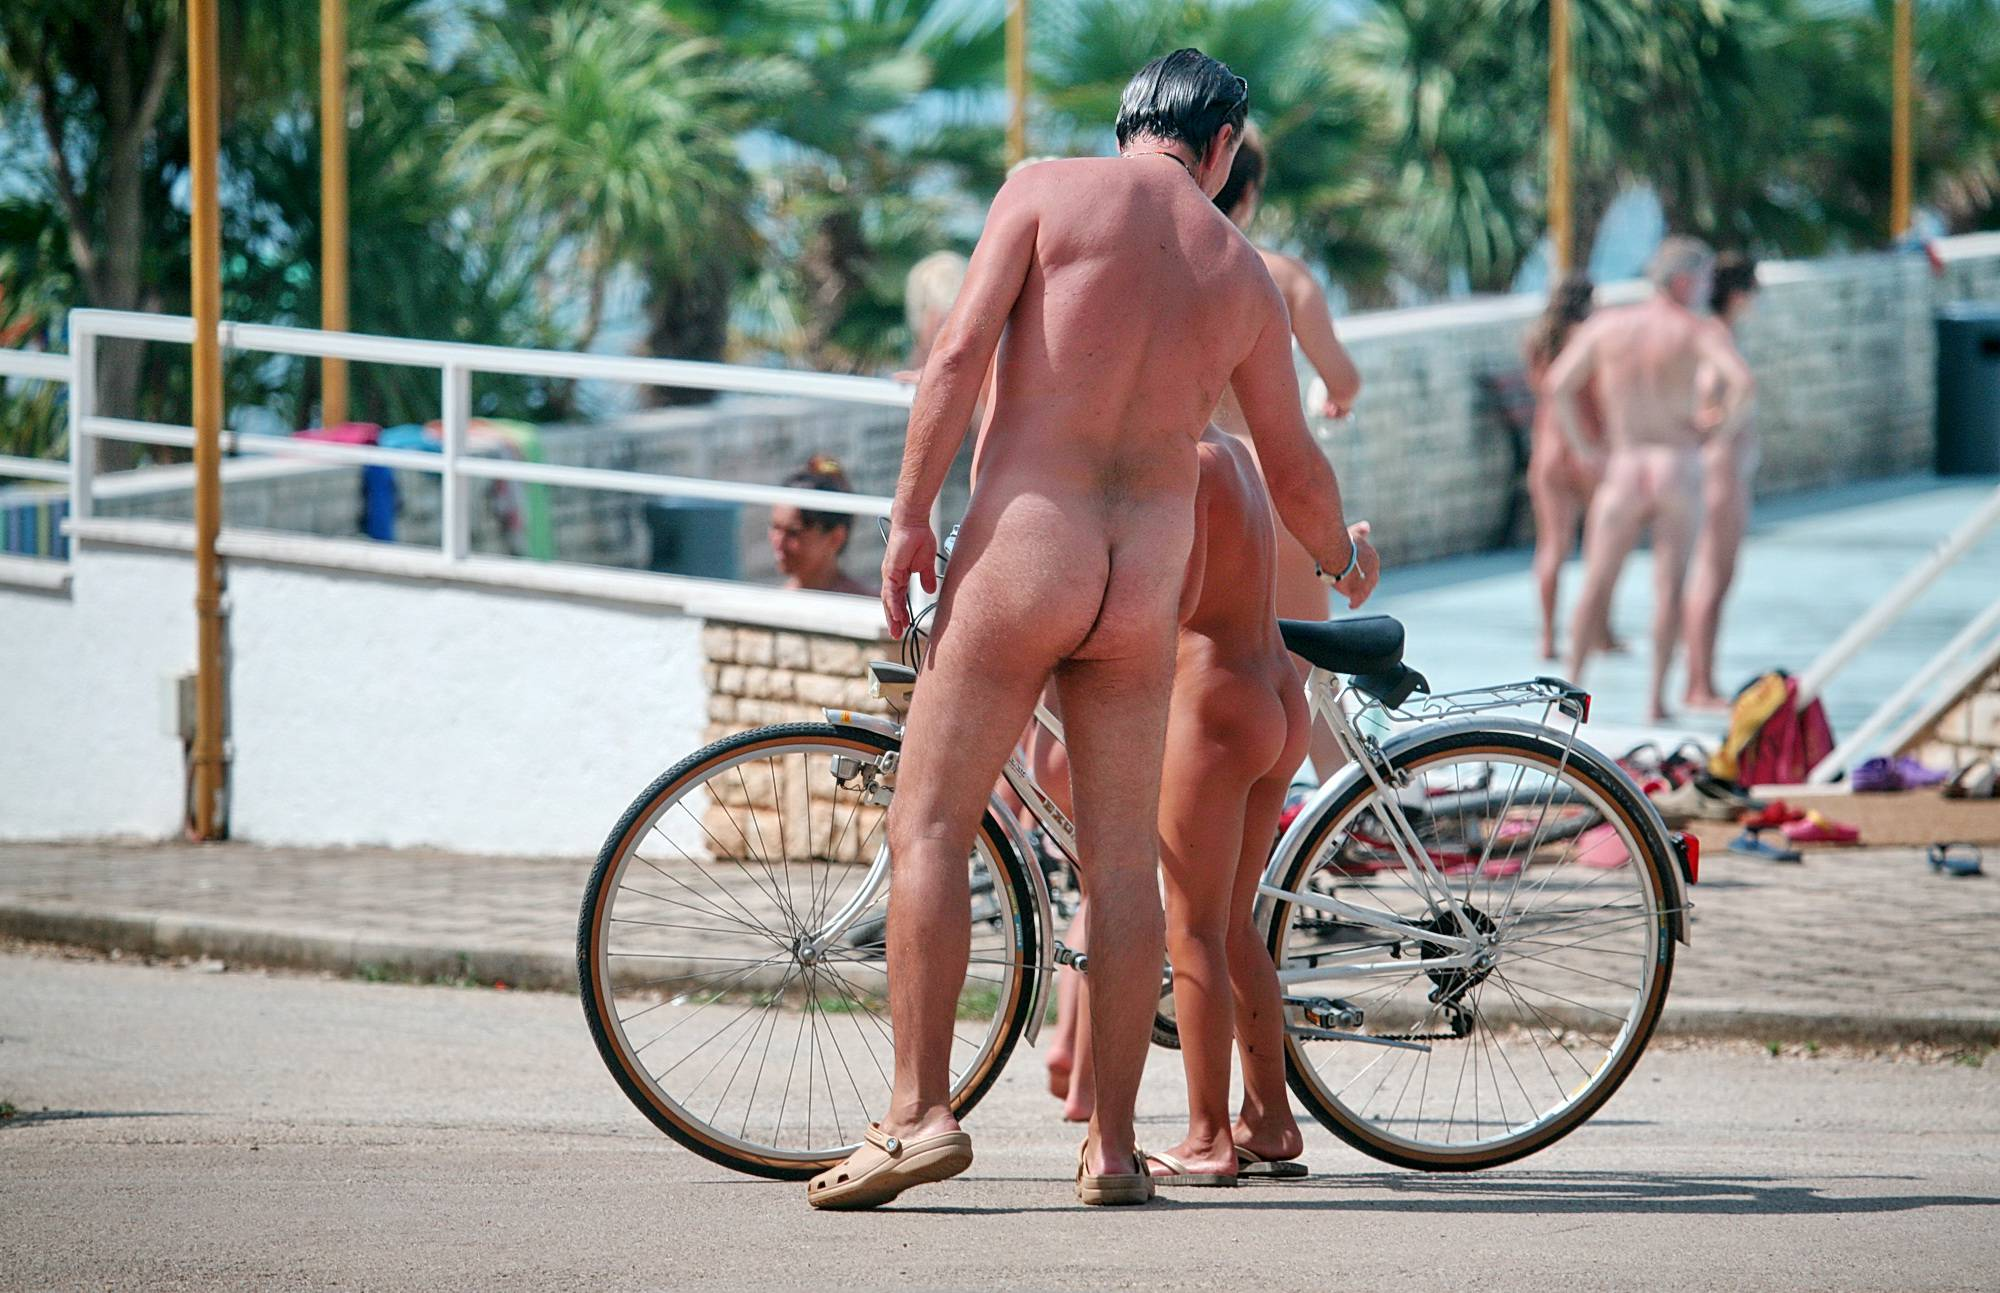 Nudist Pictures Father and Daughter Bike - 1